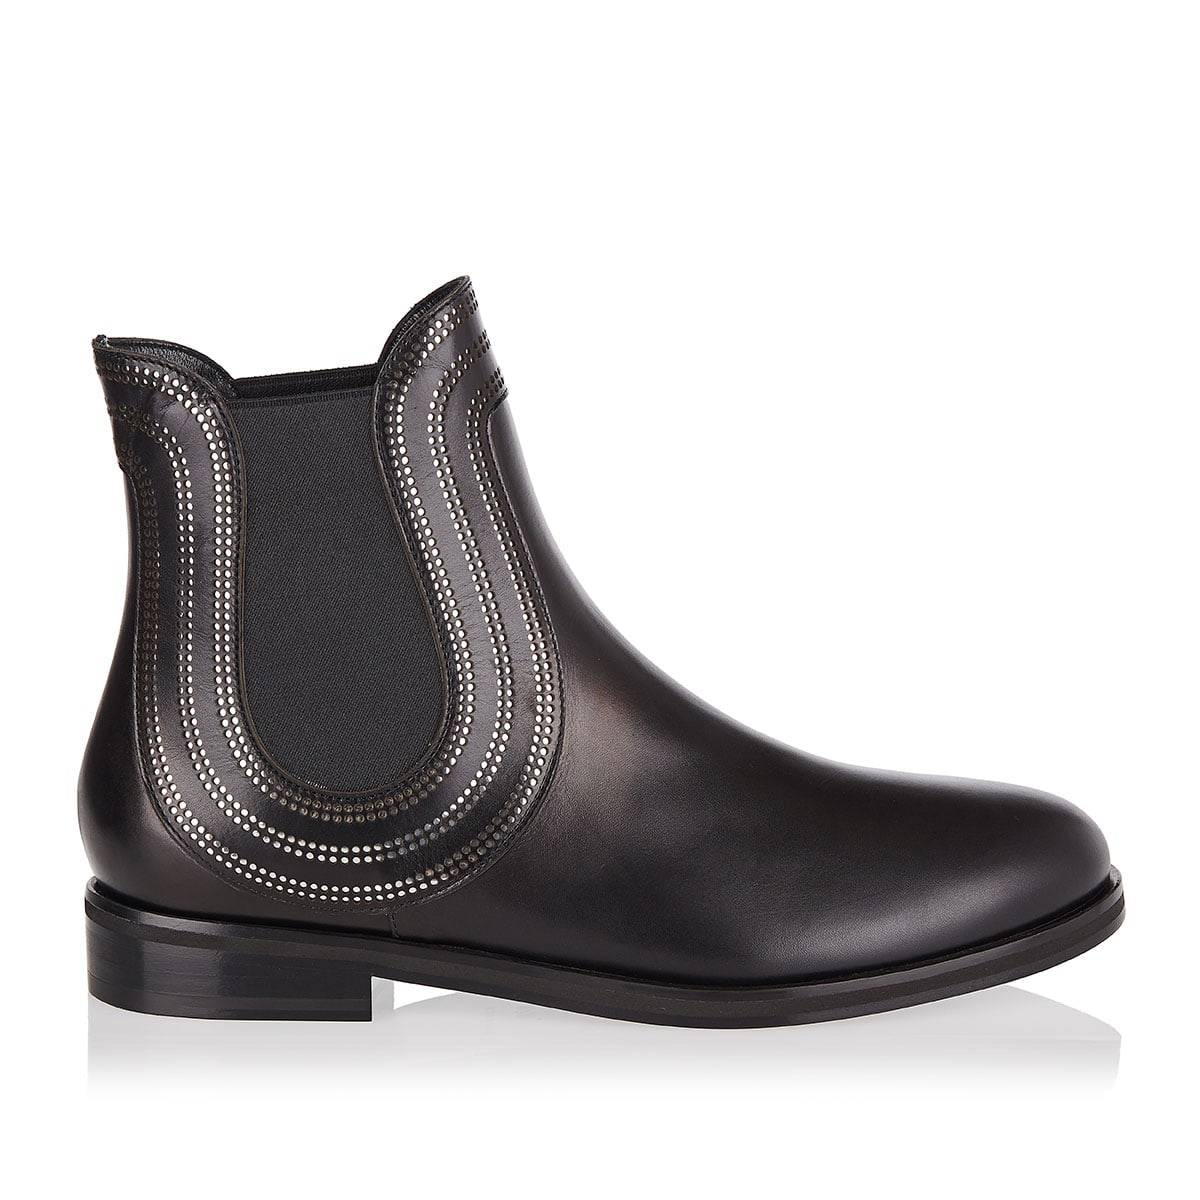 Studded leather chelsea boots